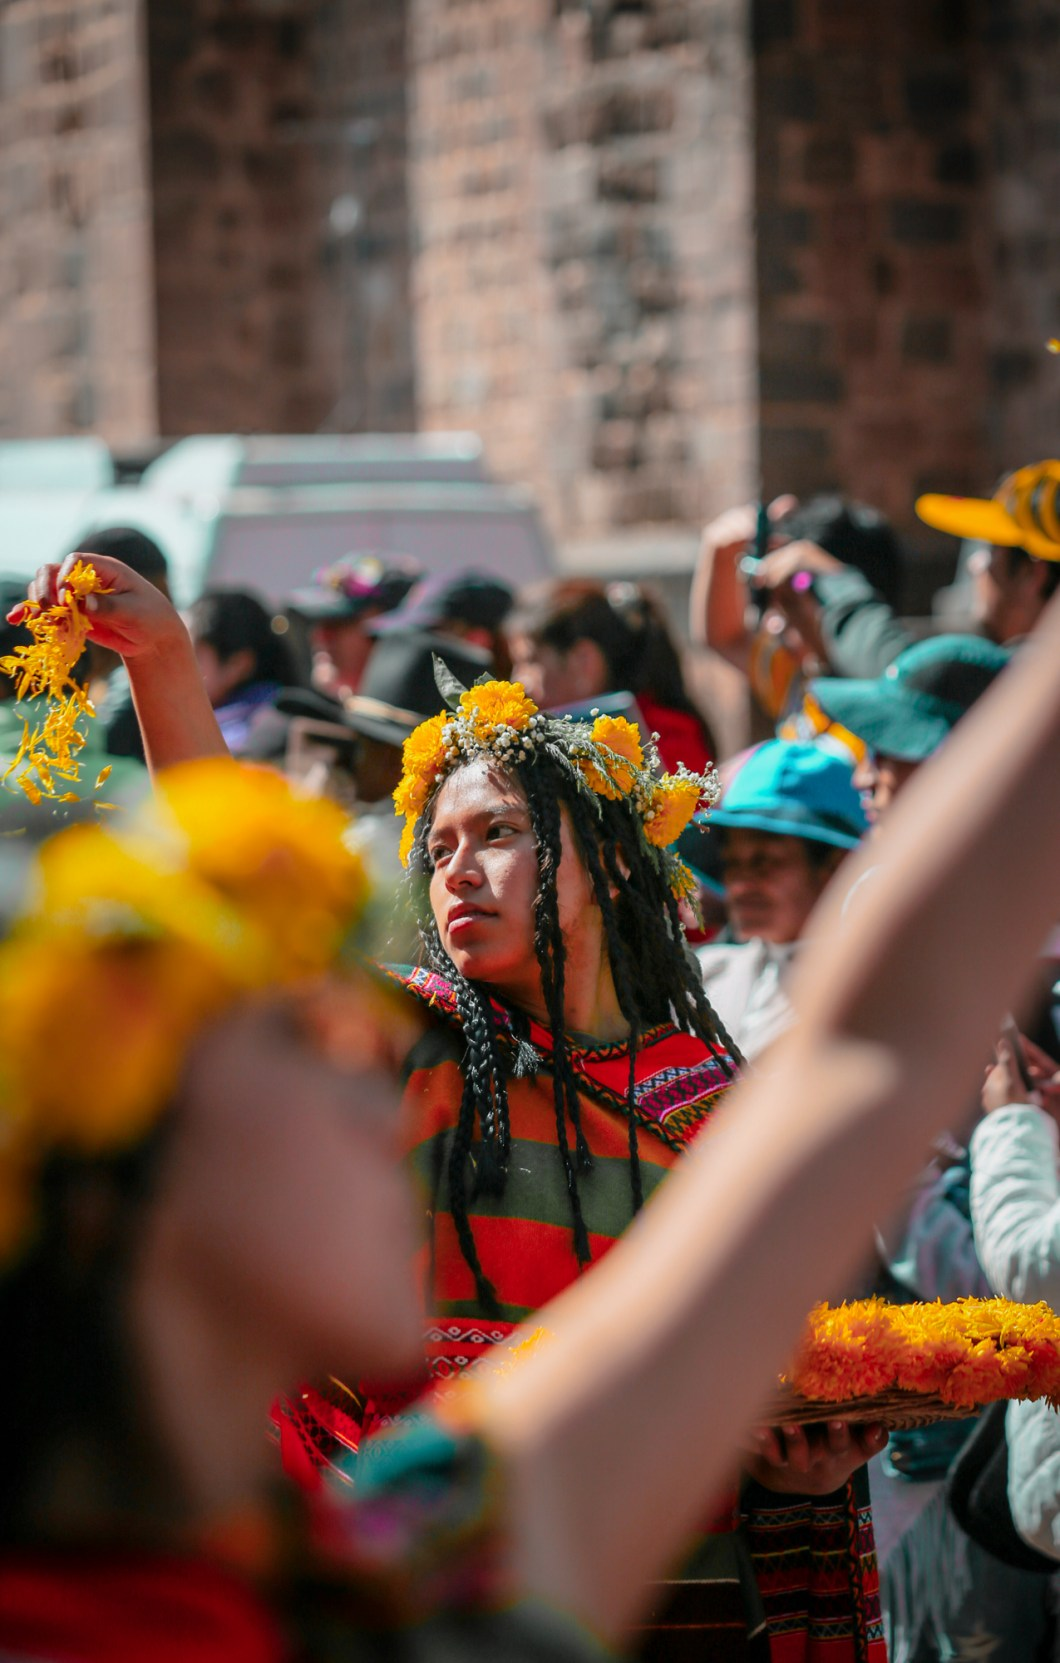 A TRAVELER'S GUIDE TO THE INTI RAYMI FESTIVAL IN CUSCO, PERU